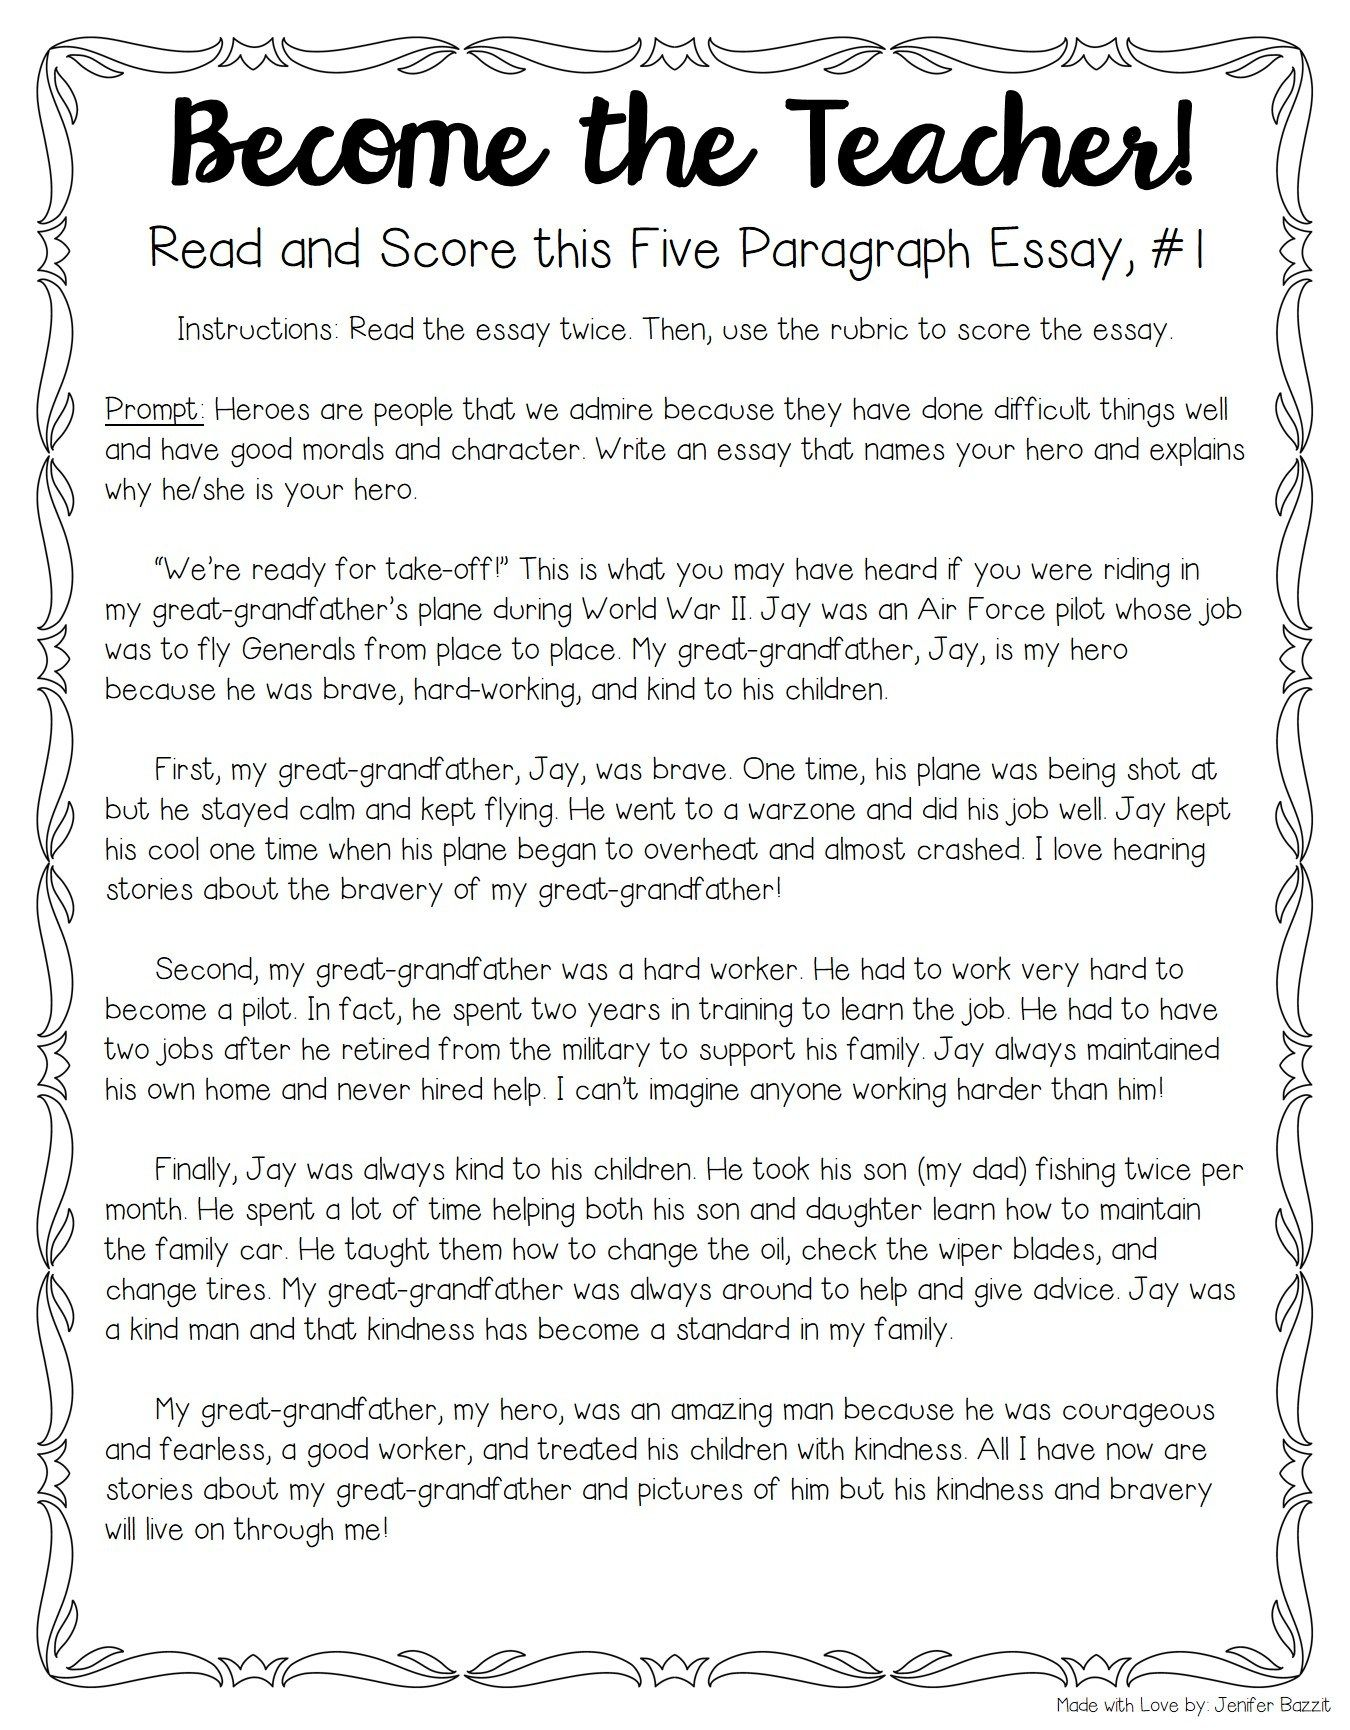 Starting A Business Essay When I Look Back To My First Experience Teaching Five Paragraph Essays To  Fifth Graders I Can Remember How Terribly Unprepared I Felt English Essay Samples also Essay On Importance Of English Language Tips For Teaching And Grading Five Paragraph Essays  Teach  Political Science Essay Topics